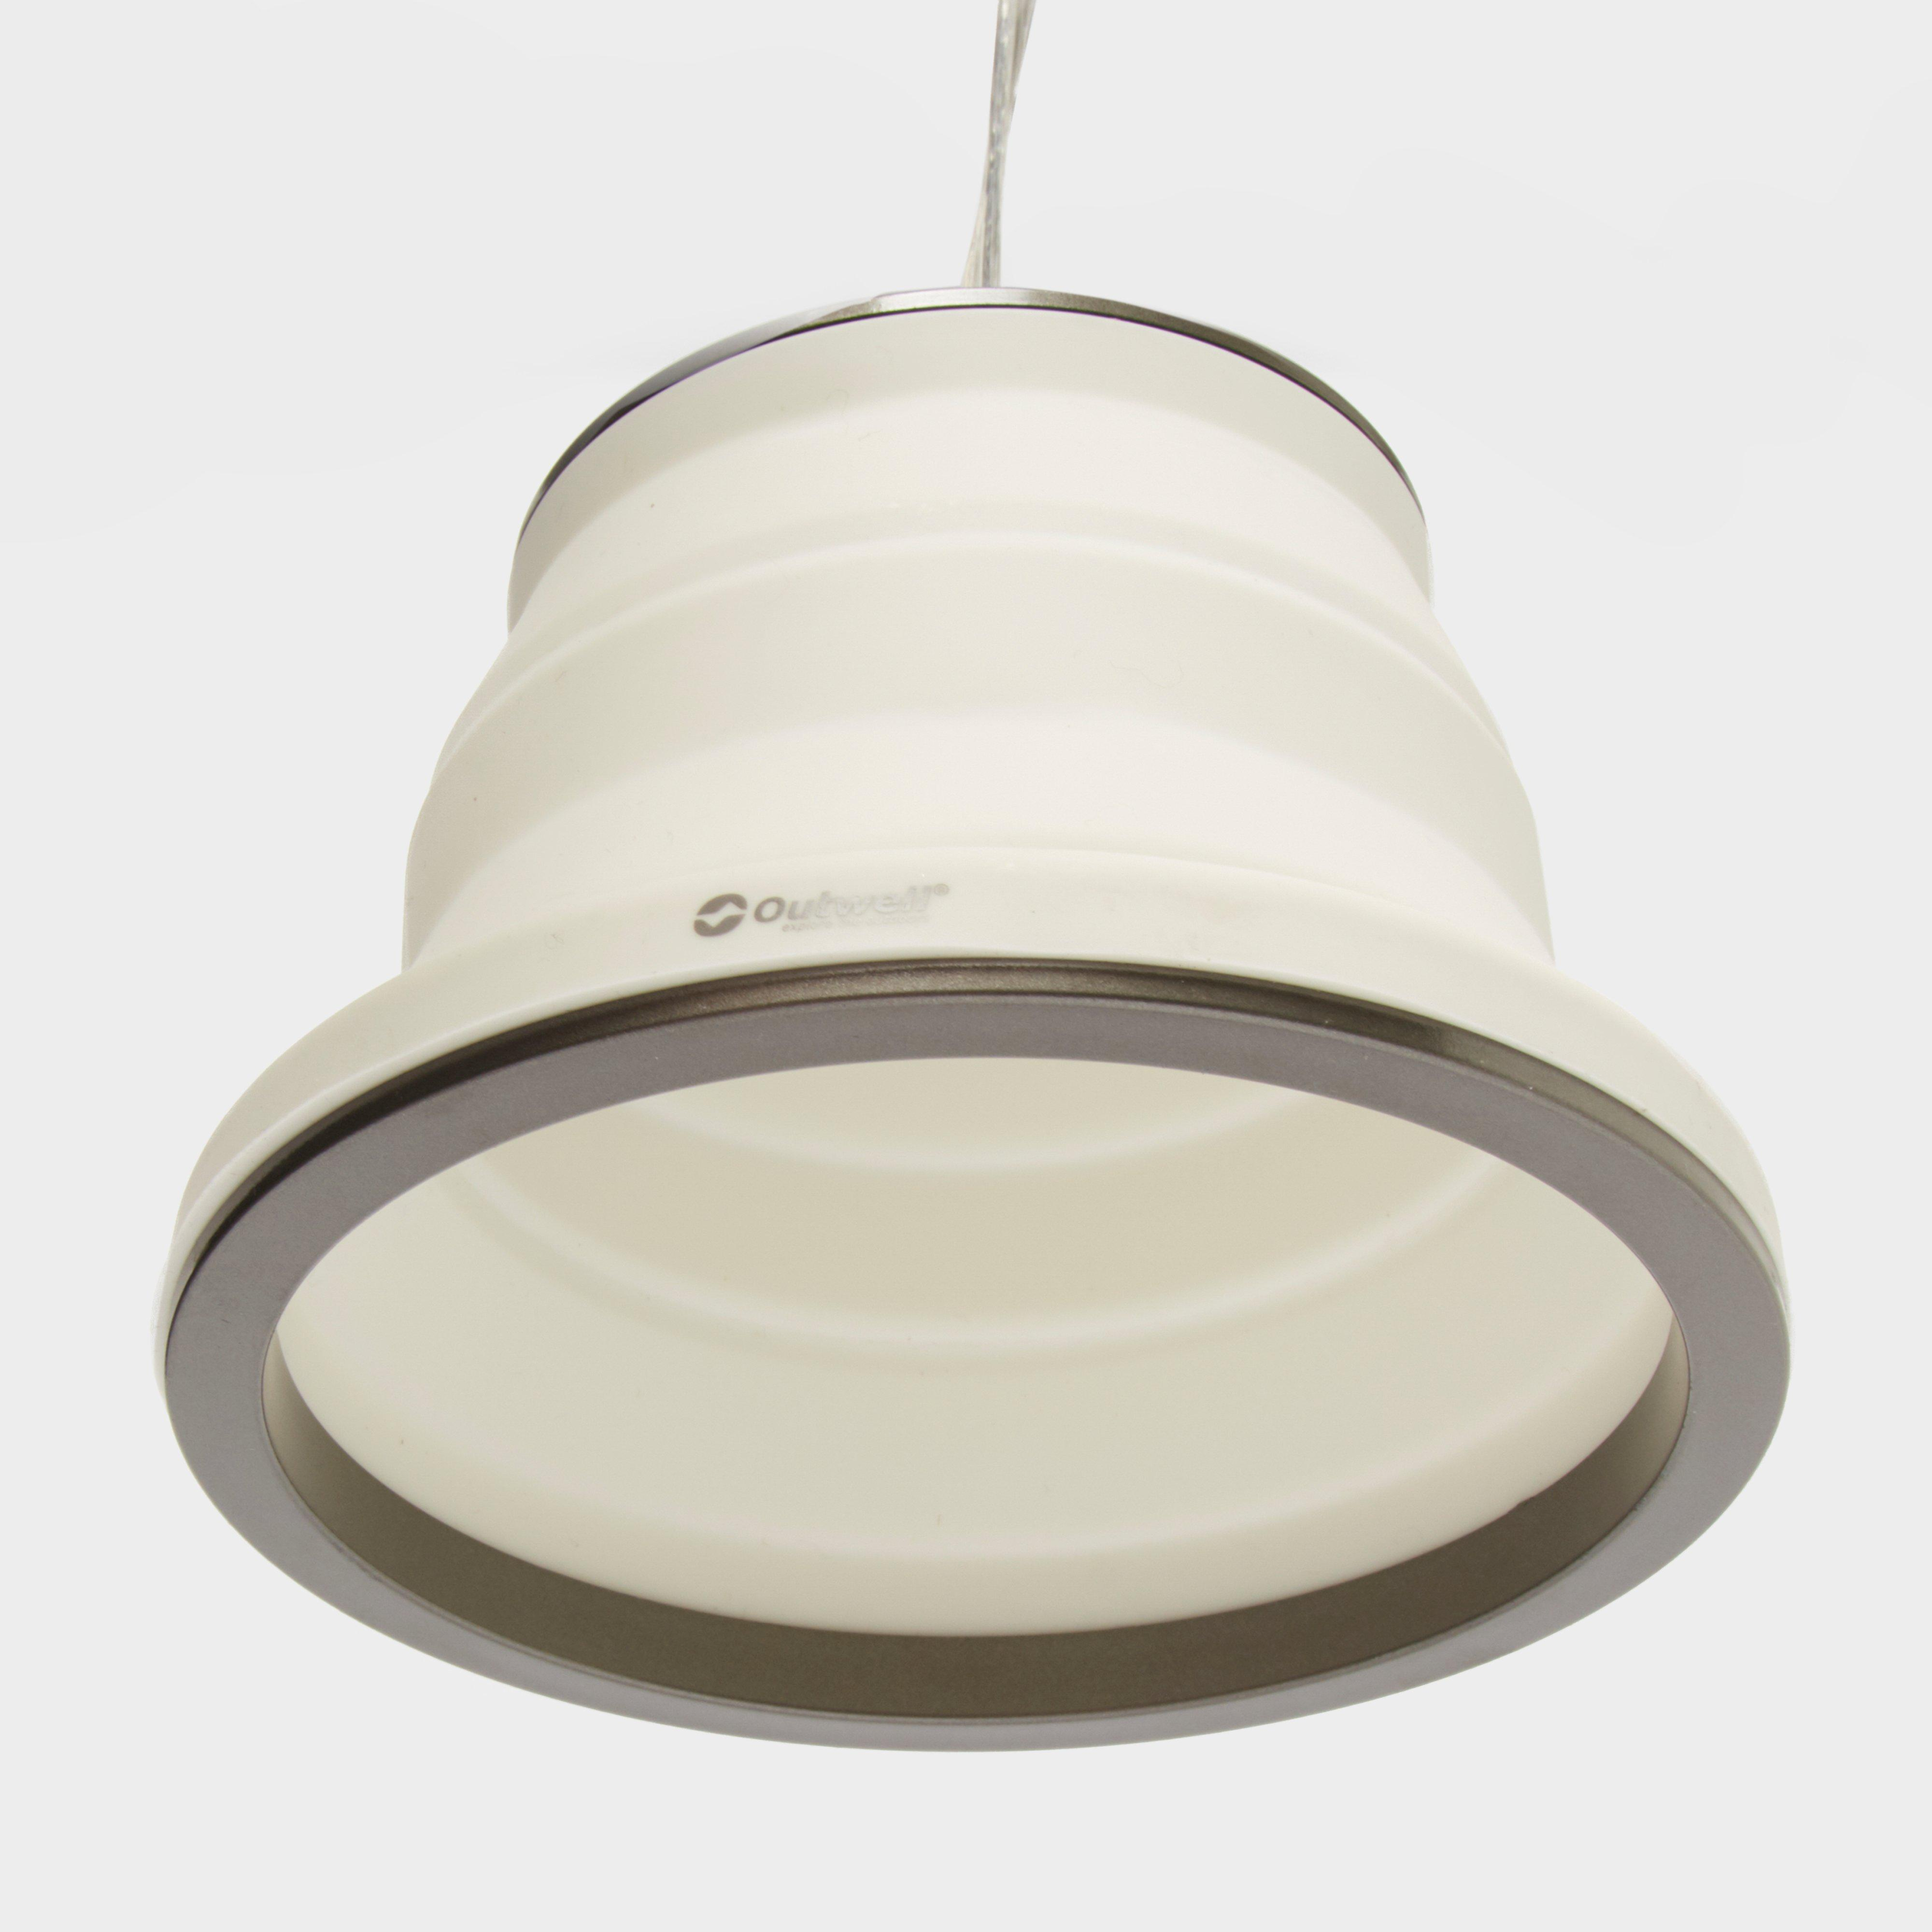 Outwell Outwell Leonis Tent Lamp